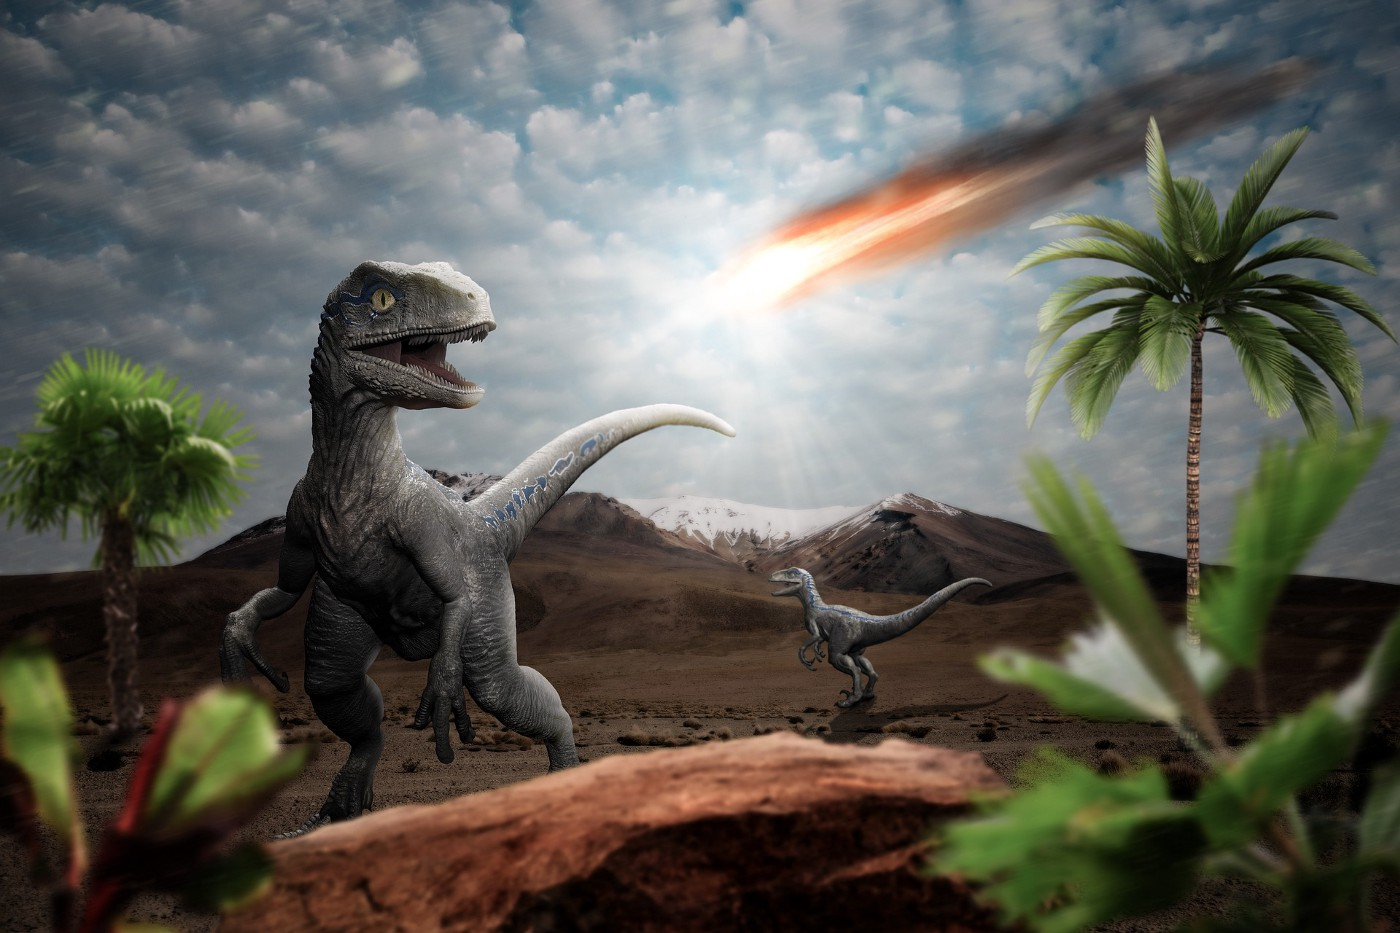 An asteroid wiped out the dinosaurs.